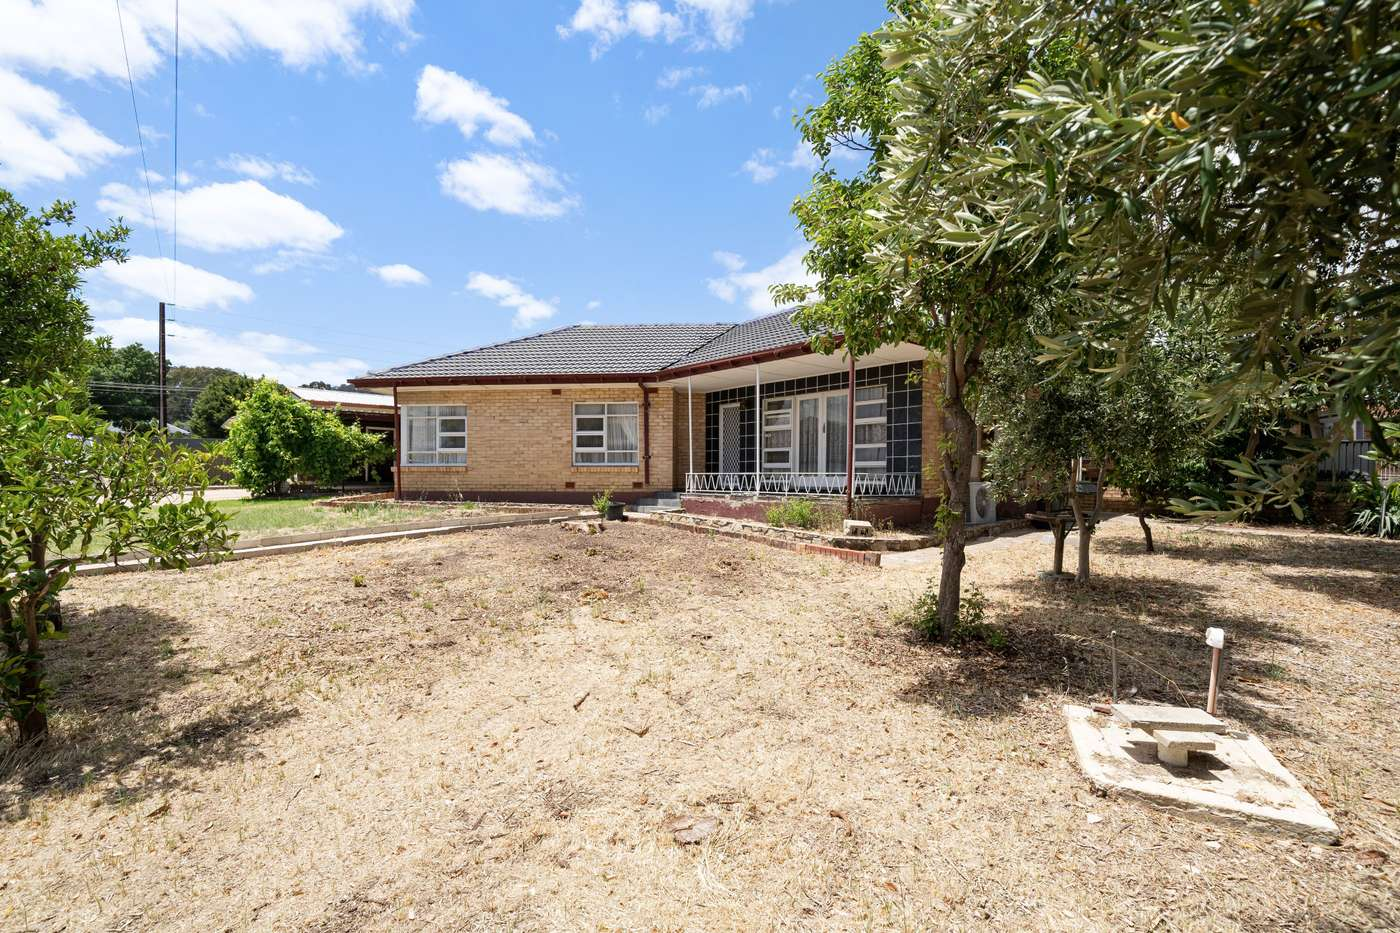 Main view of Homely house listing, 17 Ontario Avenue, Panorama, SA 5041